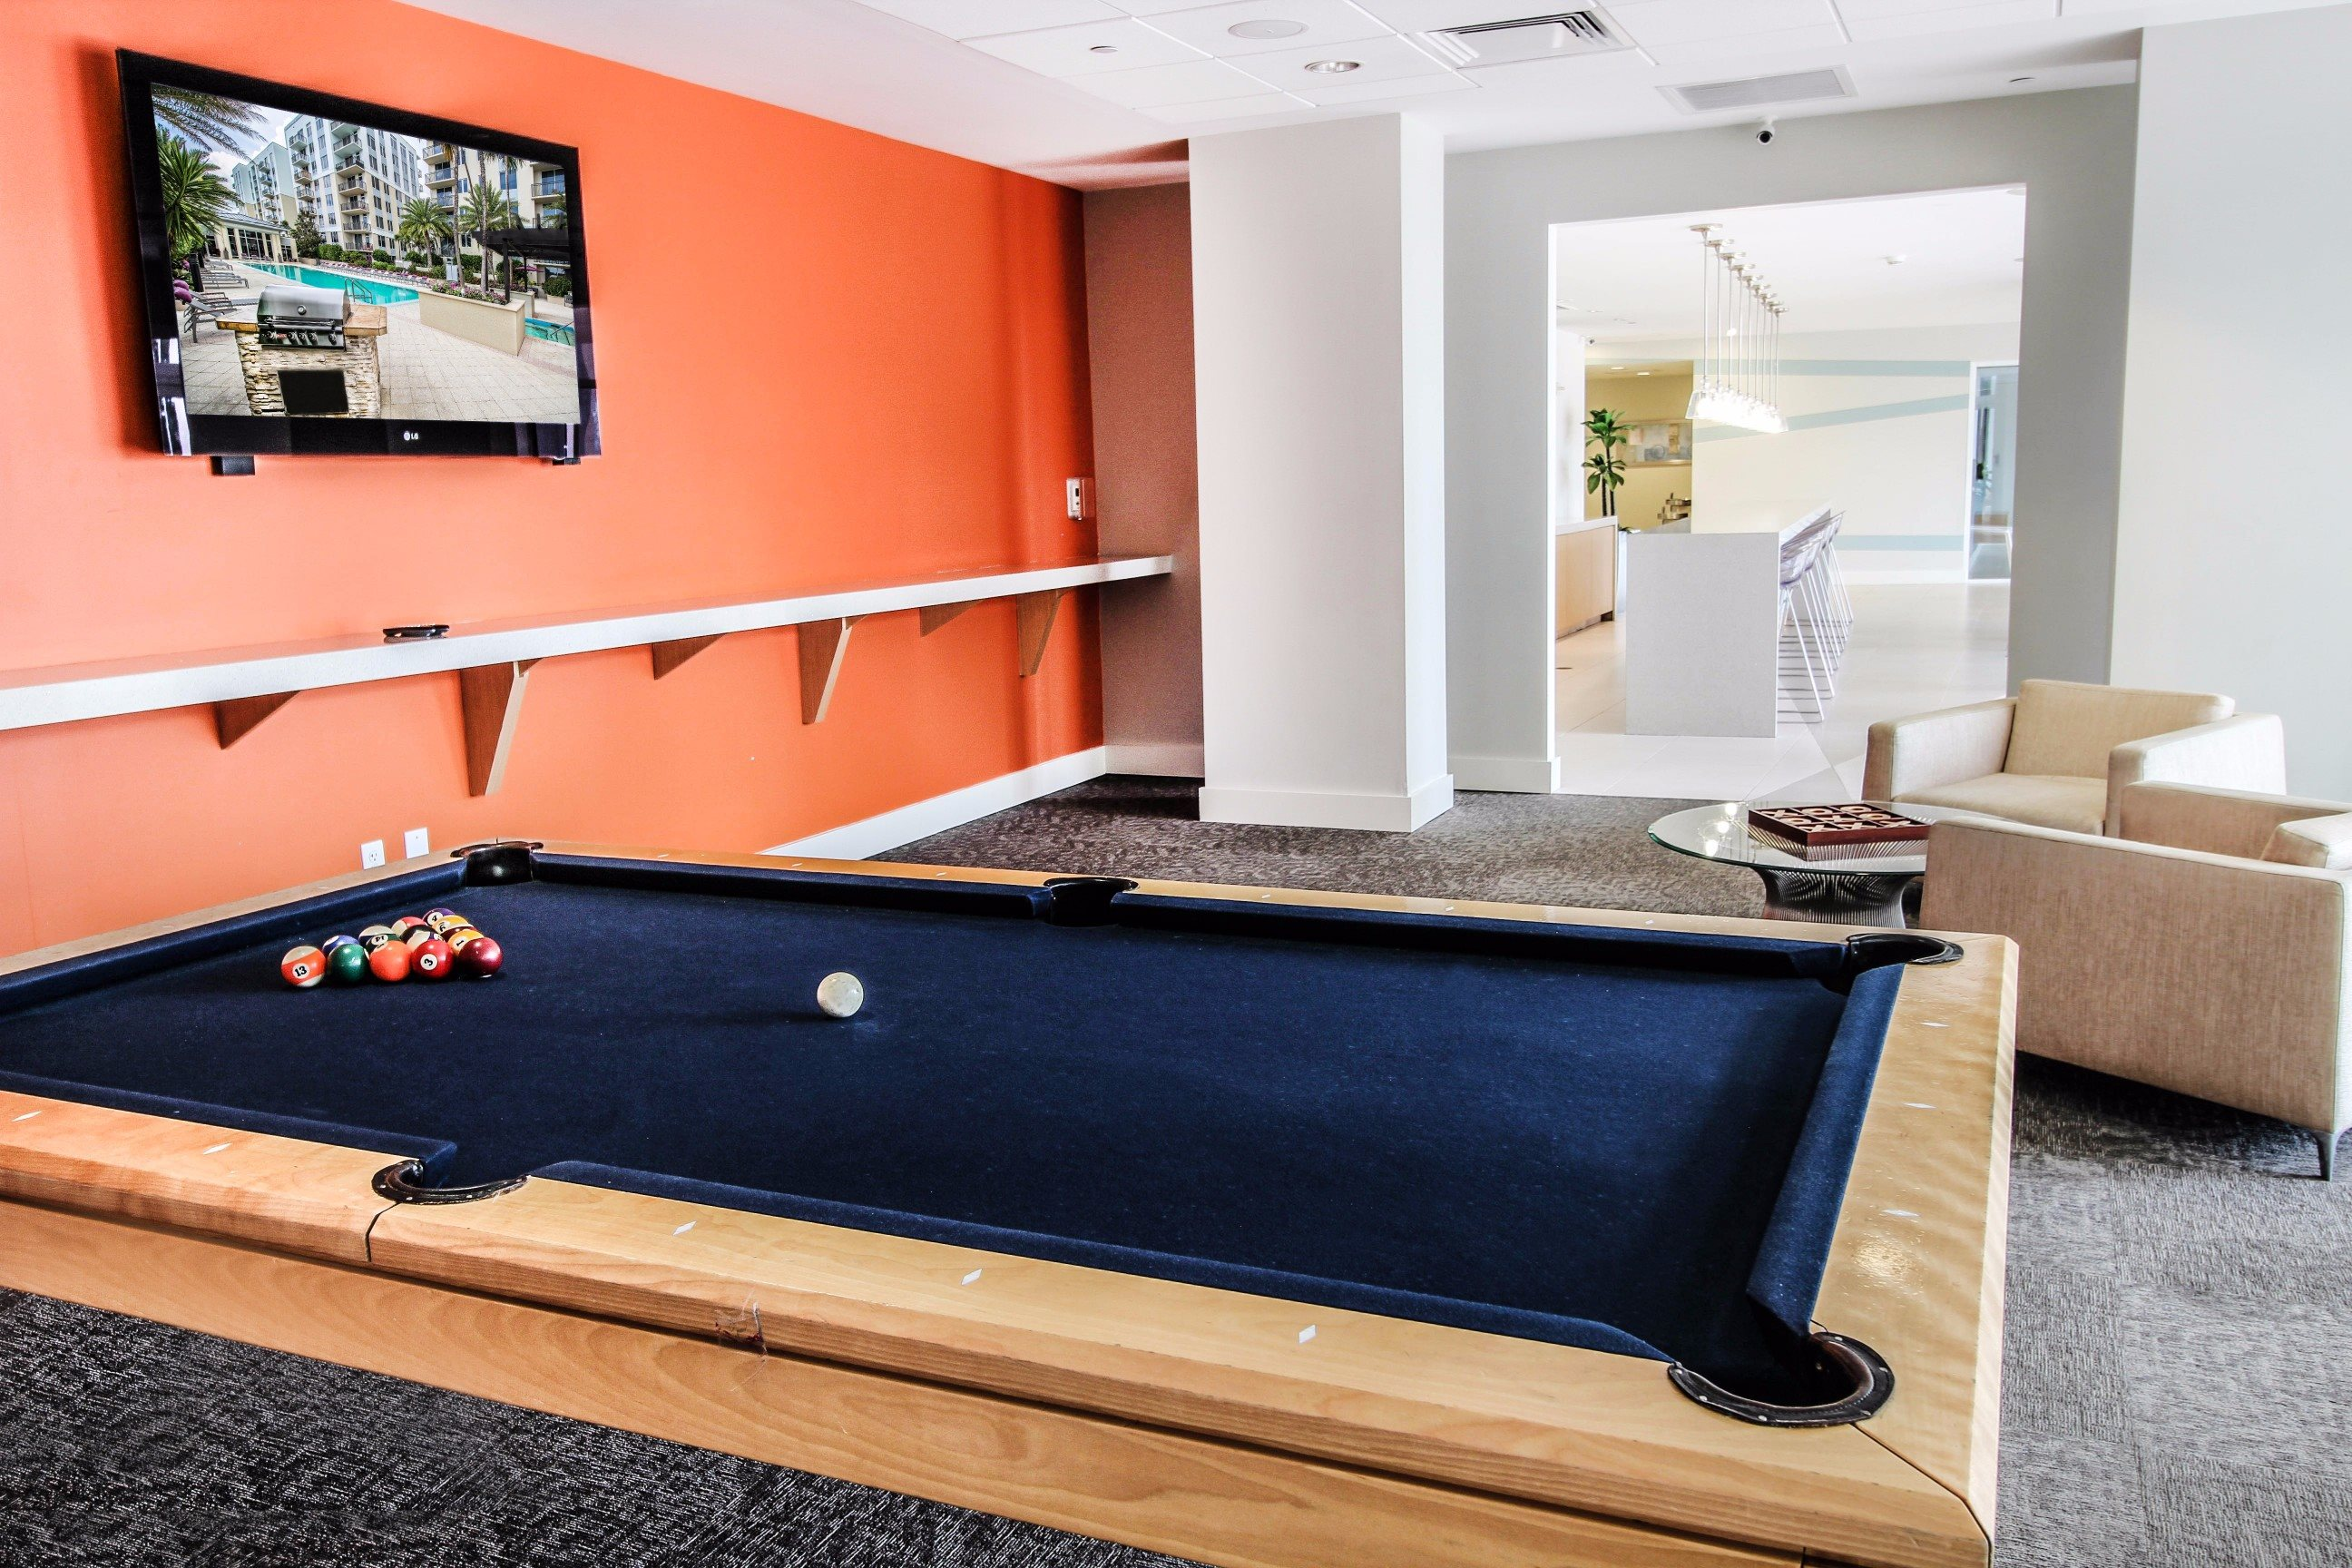 Midtown 24 Clubhouse with Pool Table